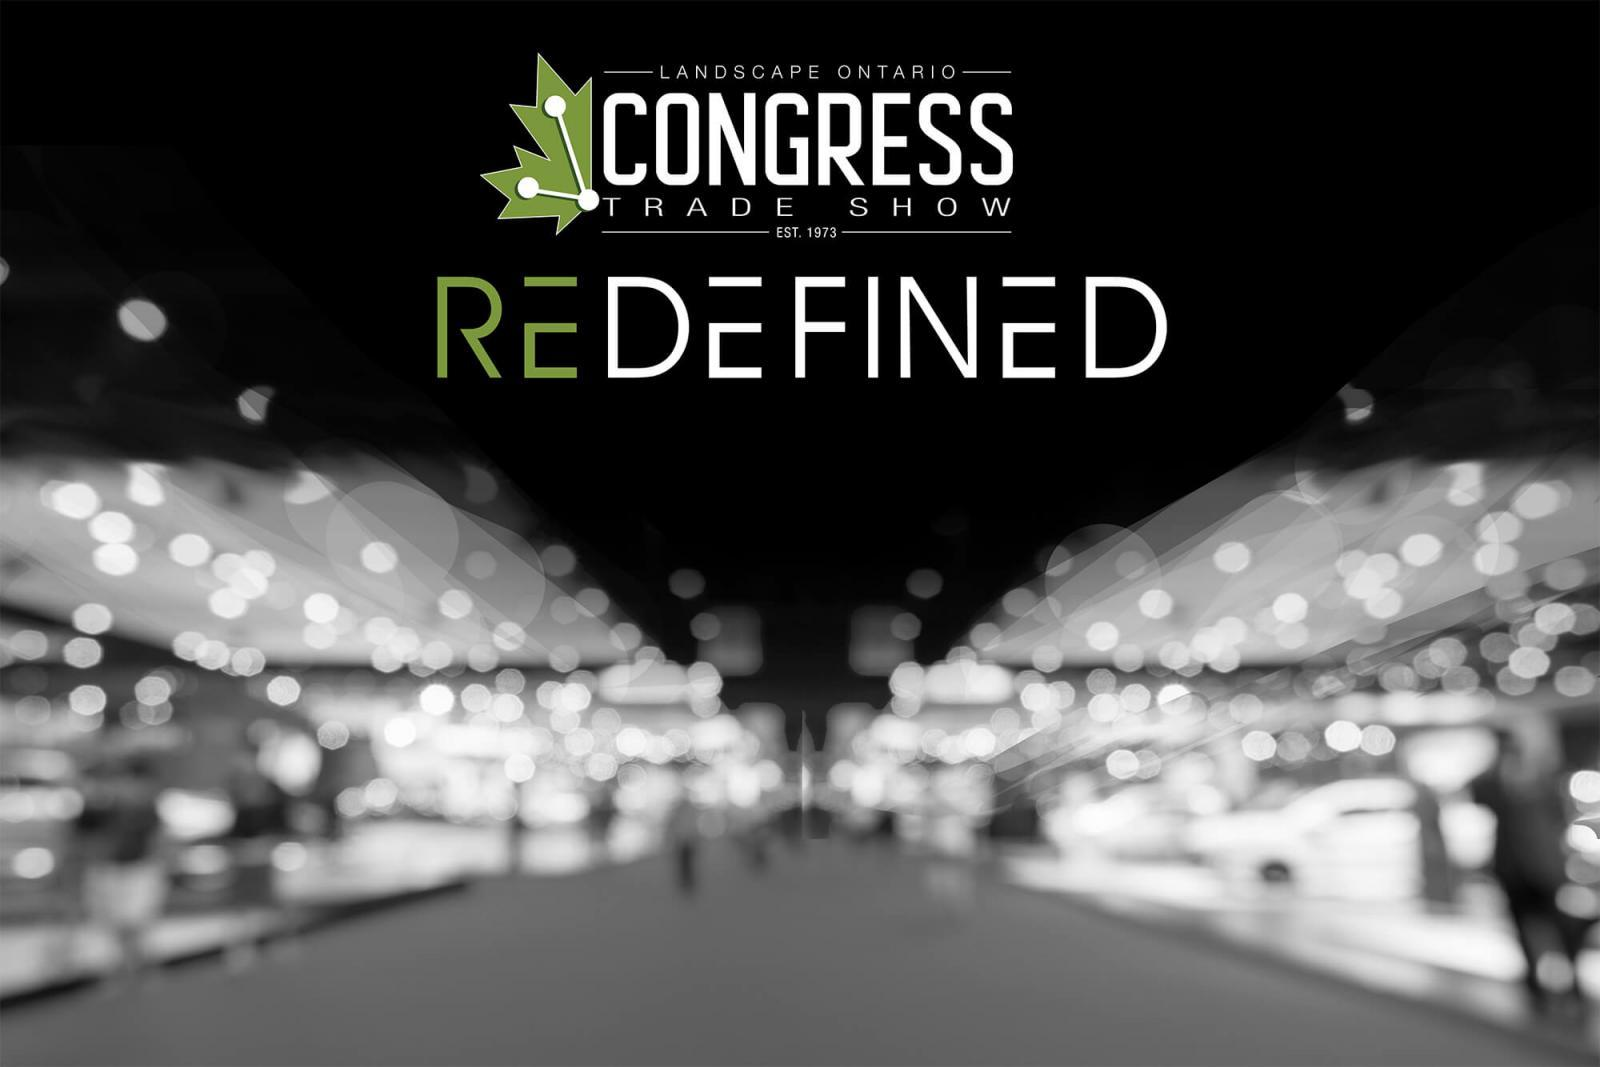 Live Congress trade show to return in 2022